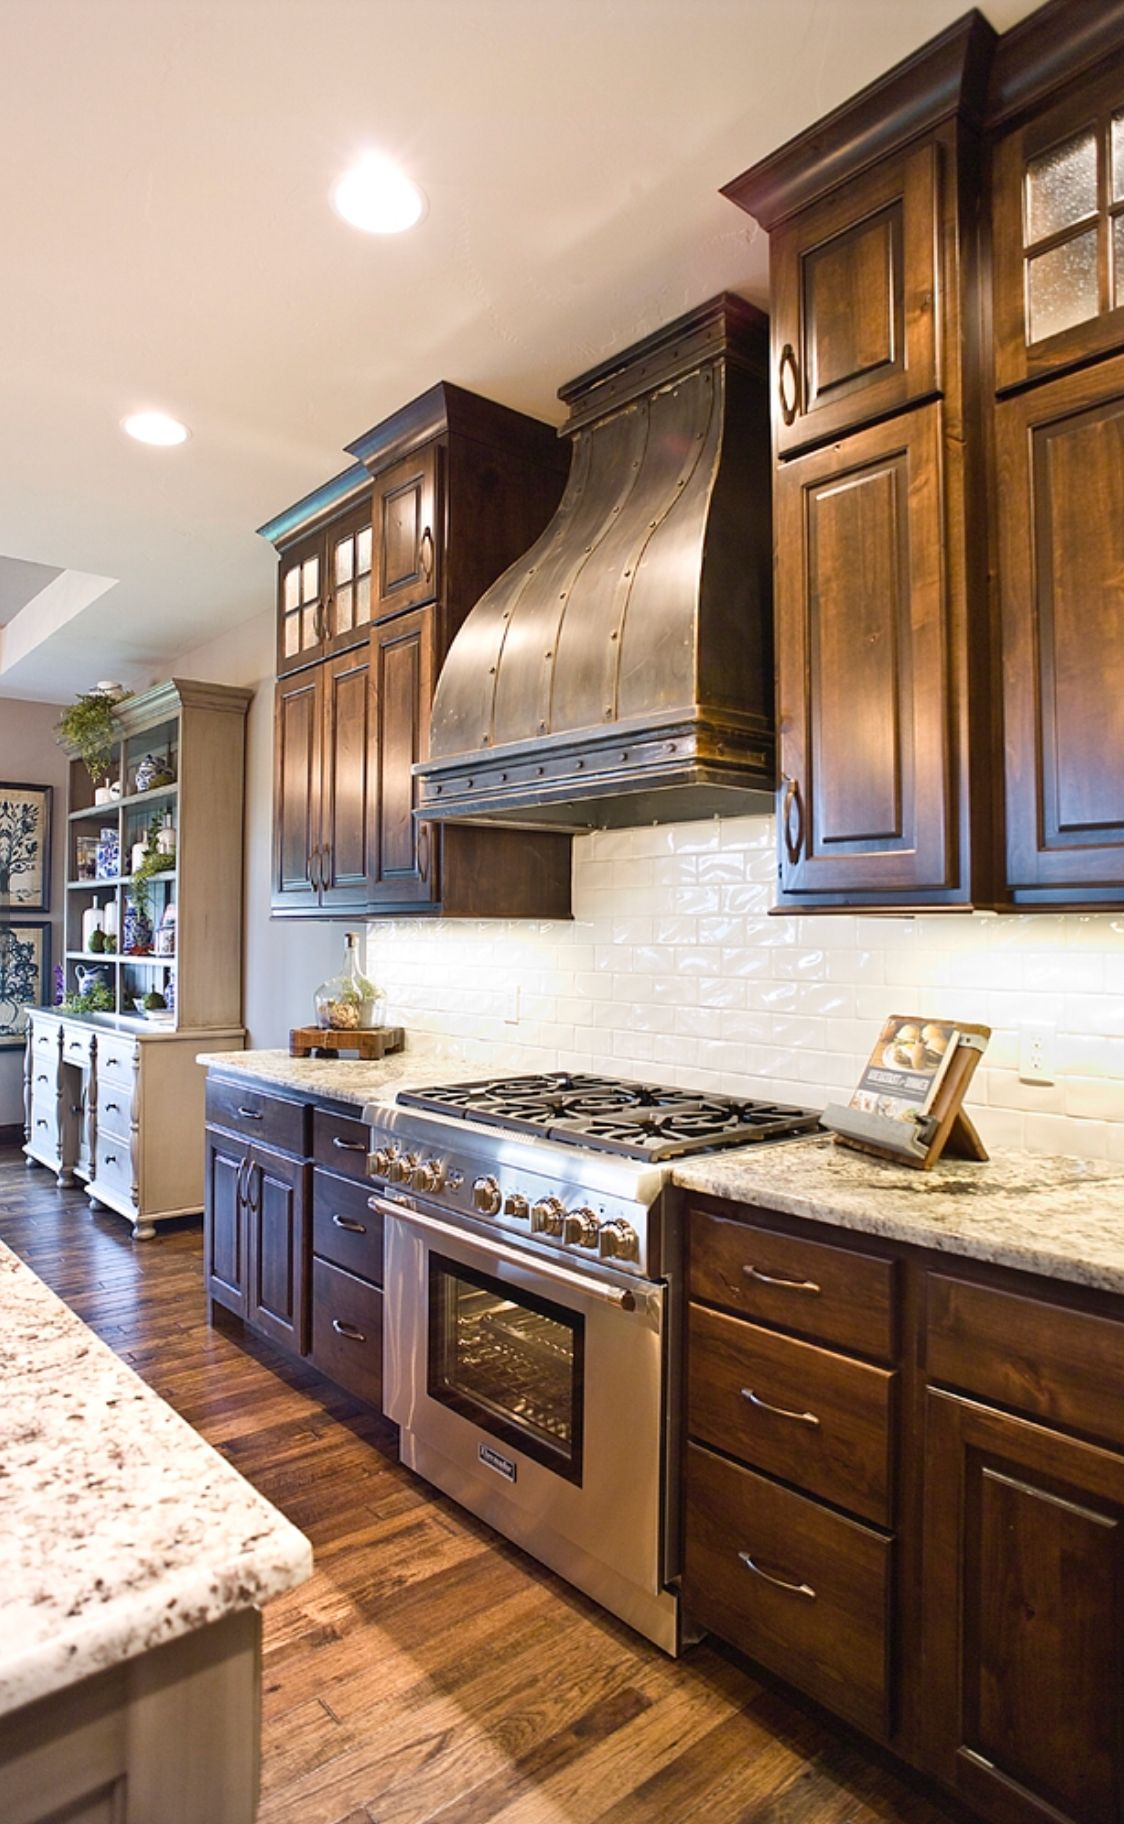 Pin by Roslyn Meadows on Kitchens   Dark wood kitchens ...